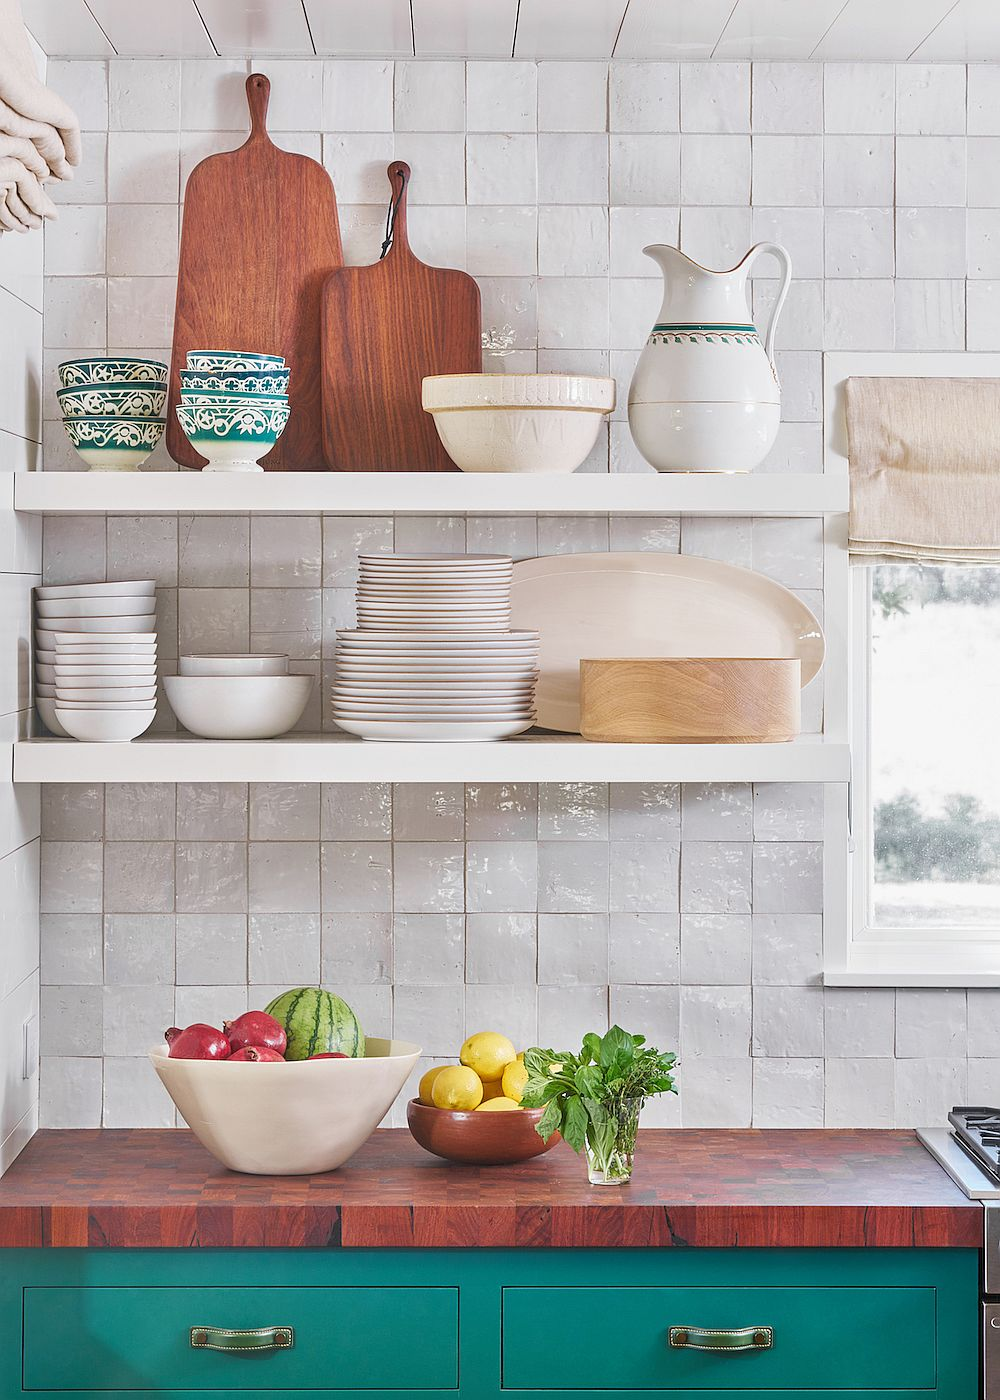 Floating shelves in the kitchen corner save space with ease